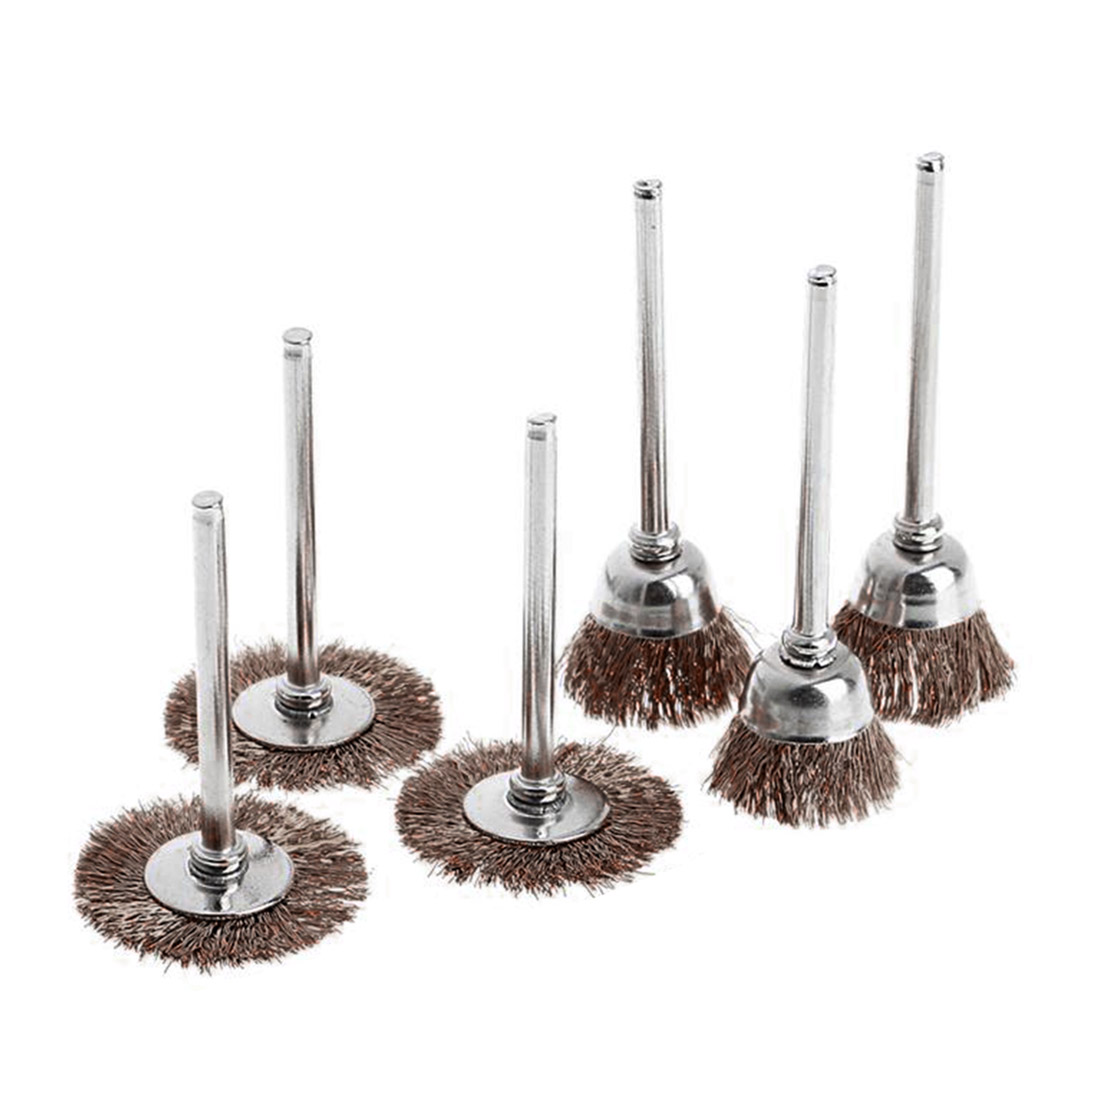 Hand Tools Mini Brass Brush Wire Wheel Brushes Die Grinder Rotary Electric Tool